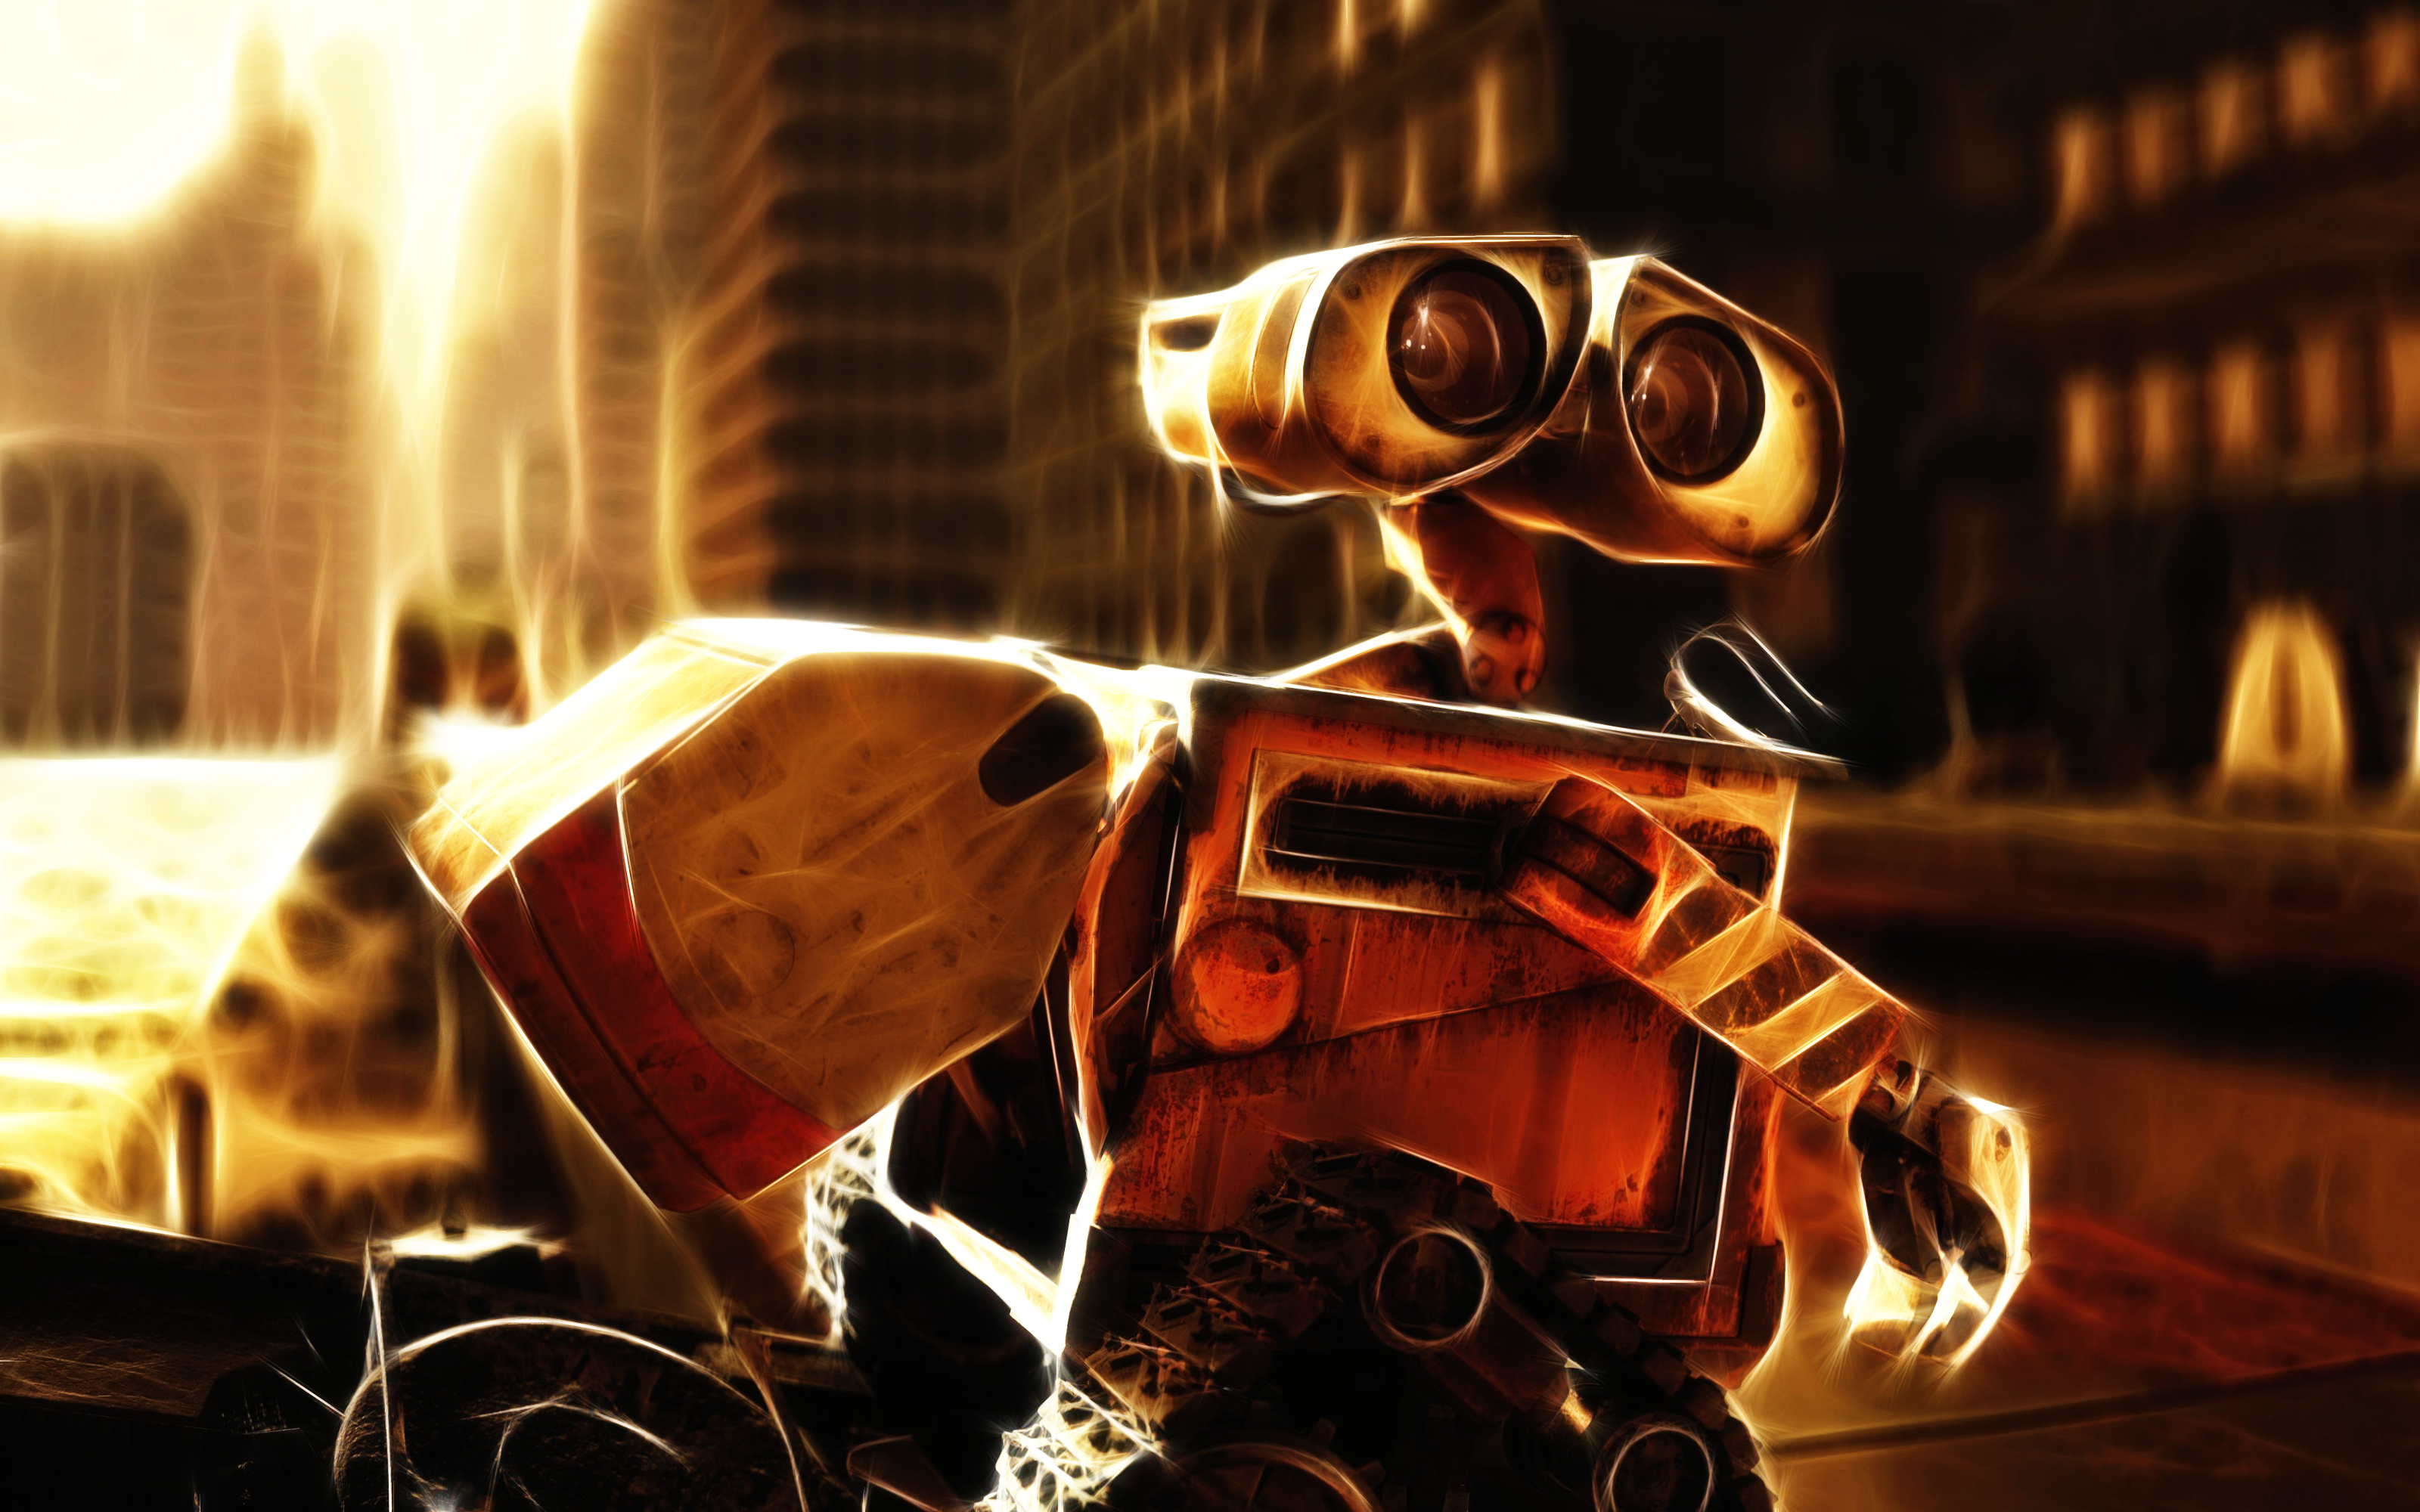 wall e wallpaper 3 | wallpapersbq